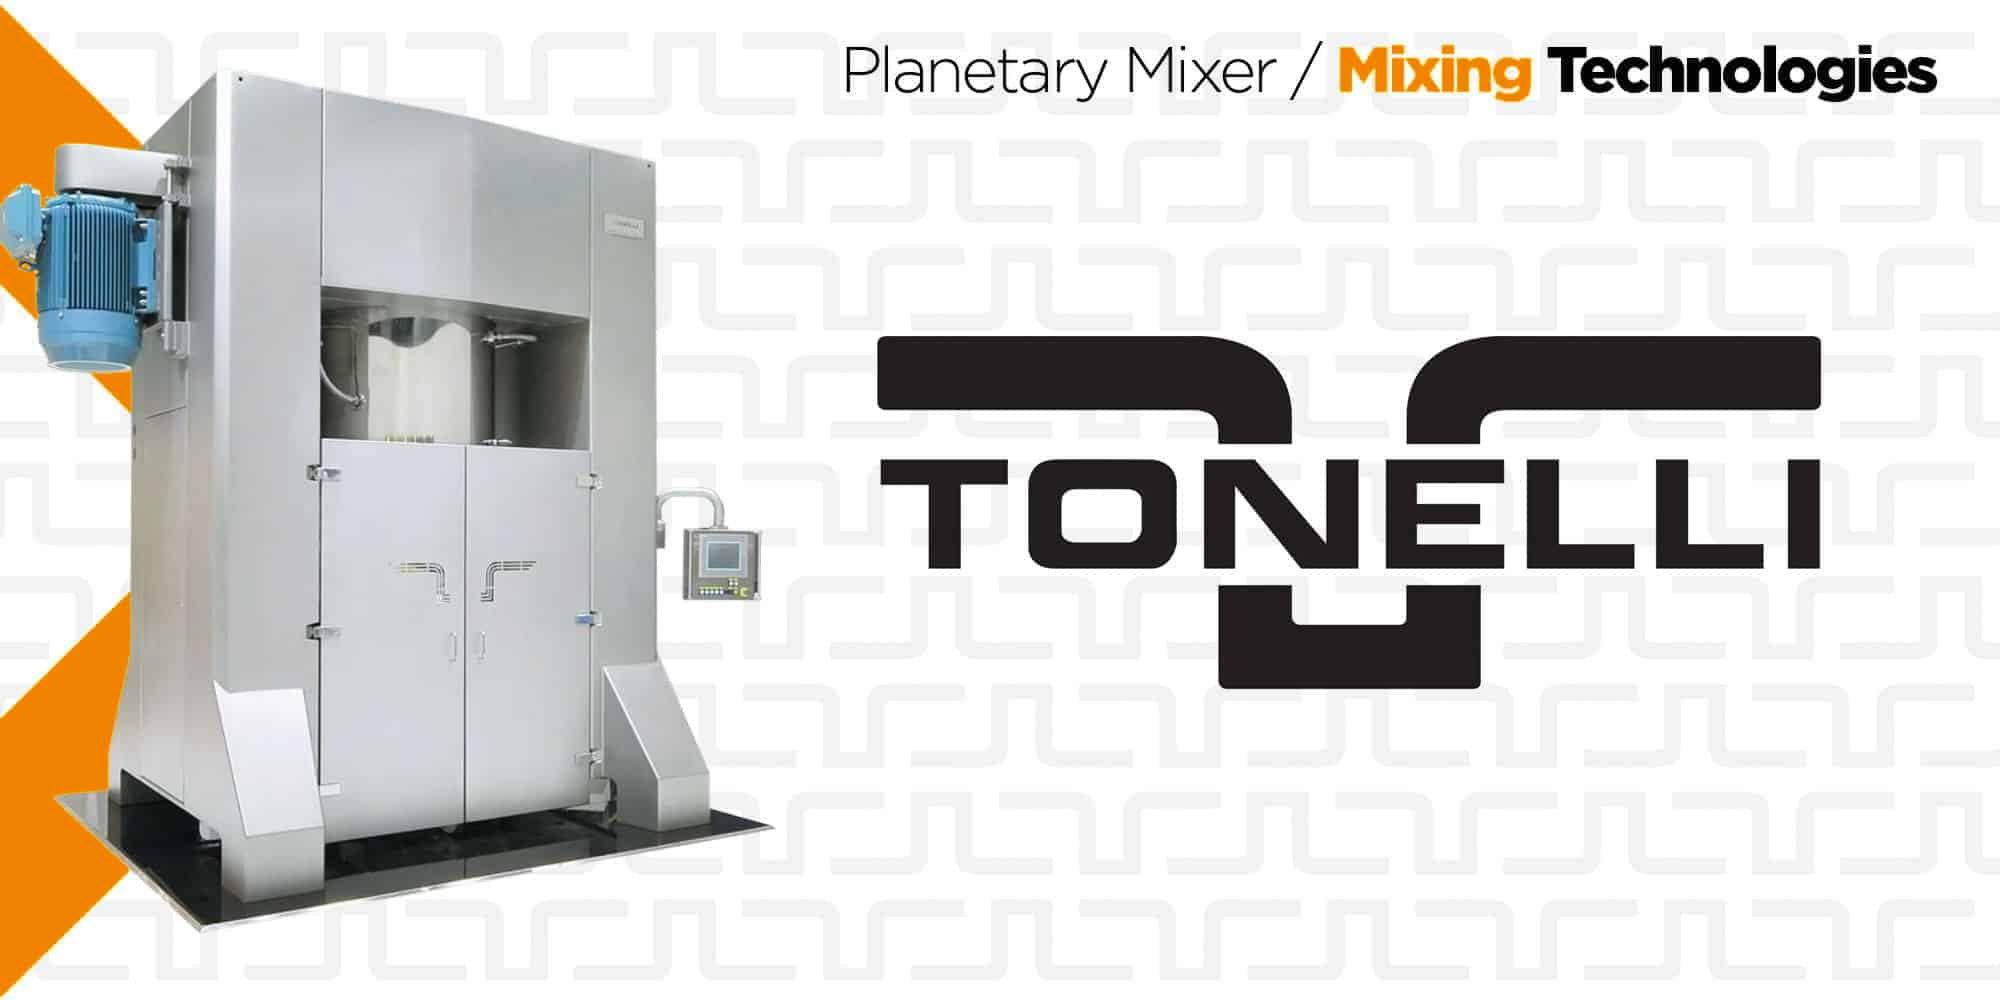 Tonelli | Vertical Planetary Mixers